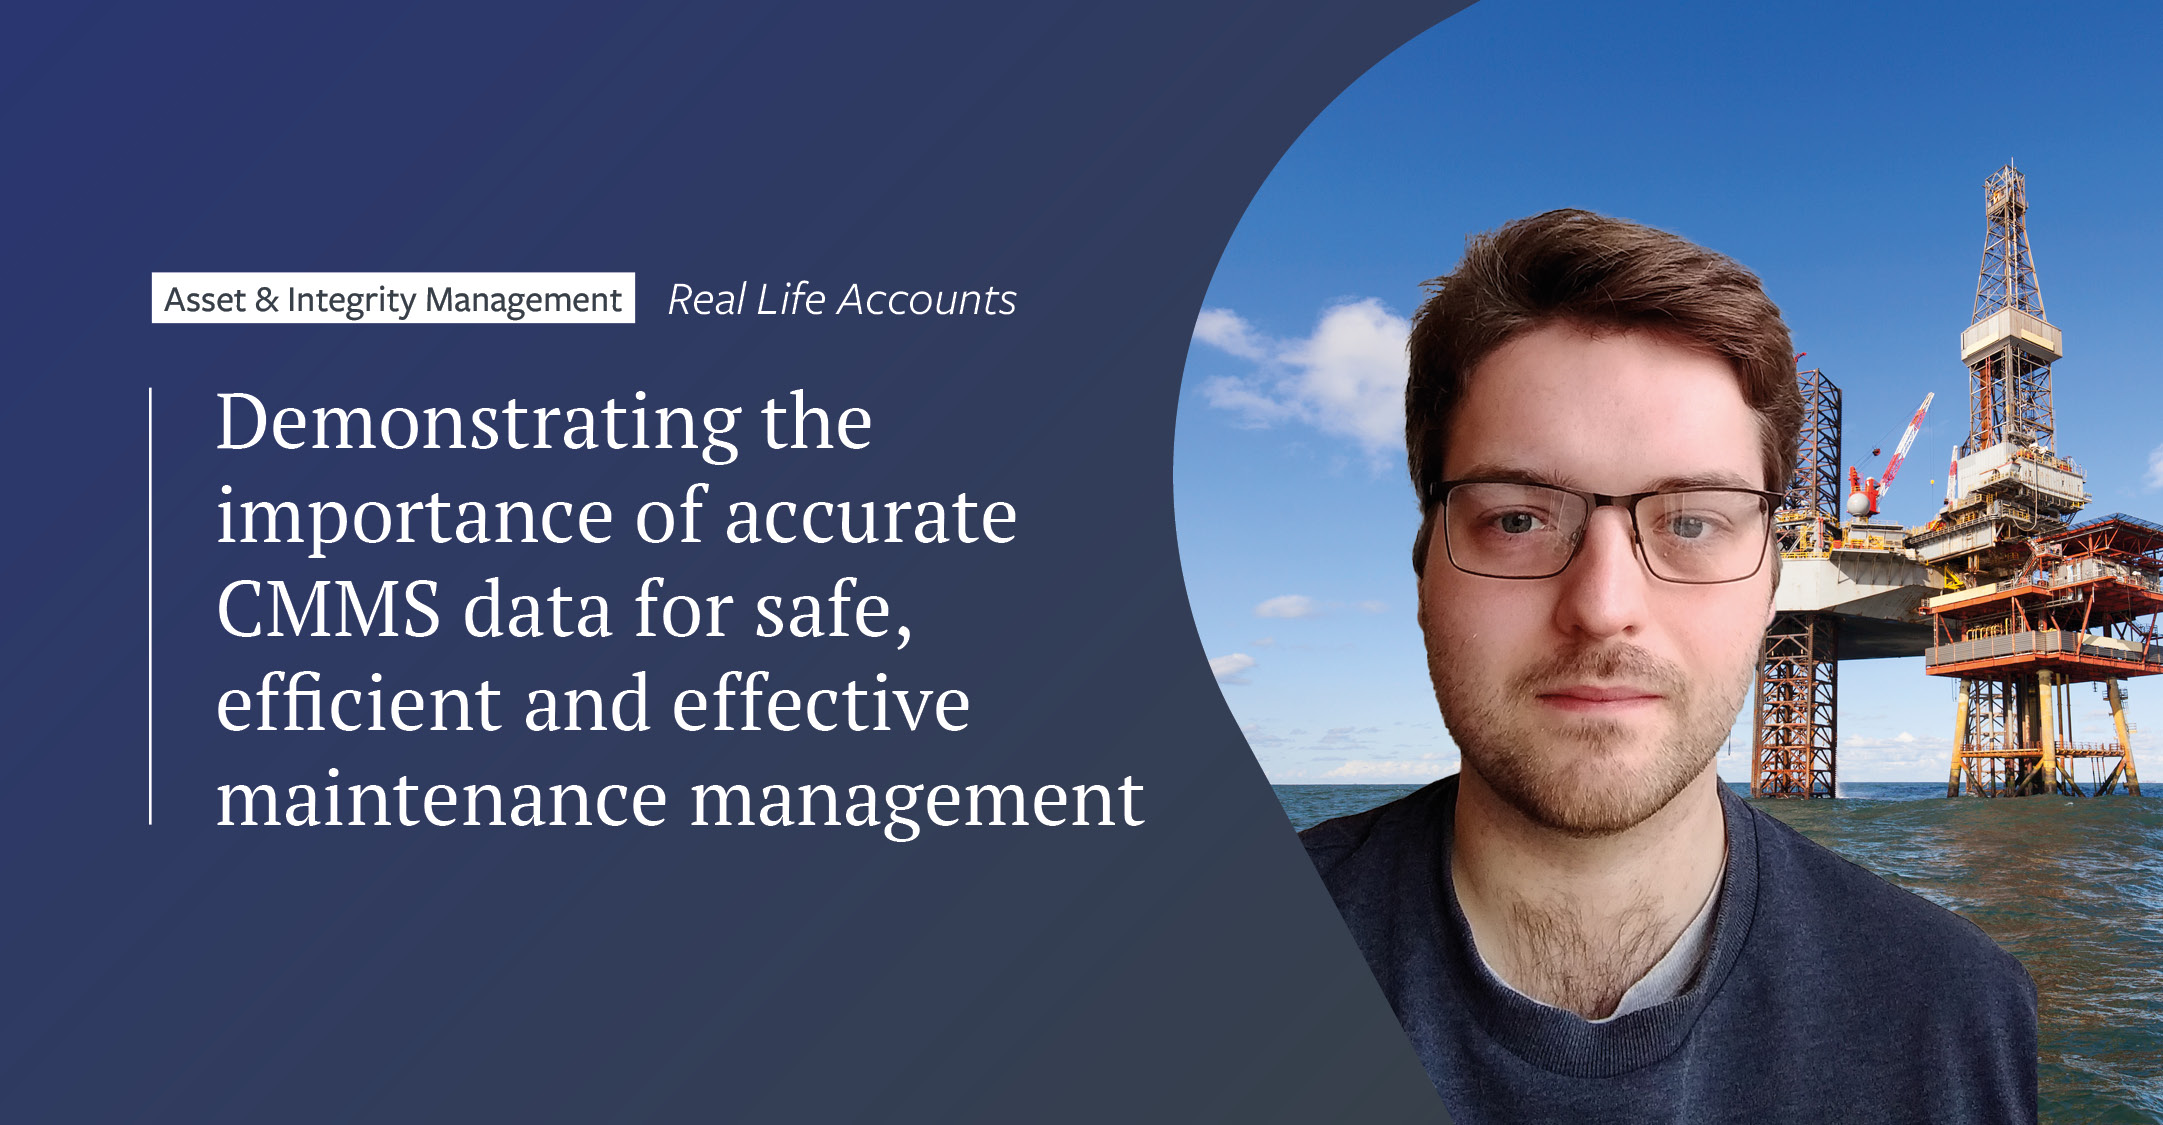 Real-life accounts: Demonstrating the importance of accurate CMMS data for safe, efficient and effective maintenance management